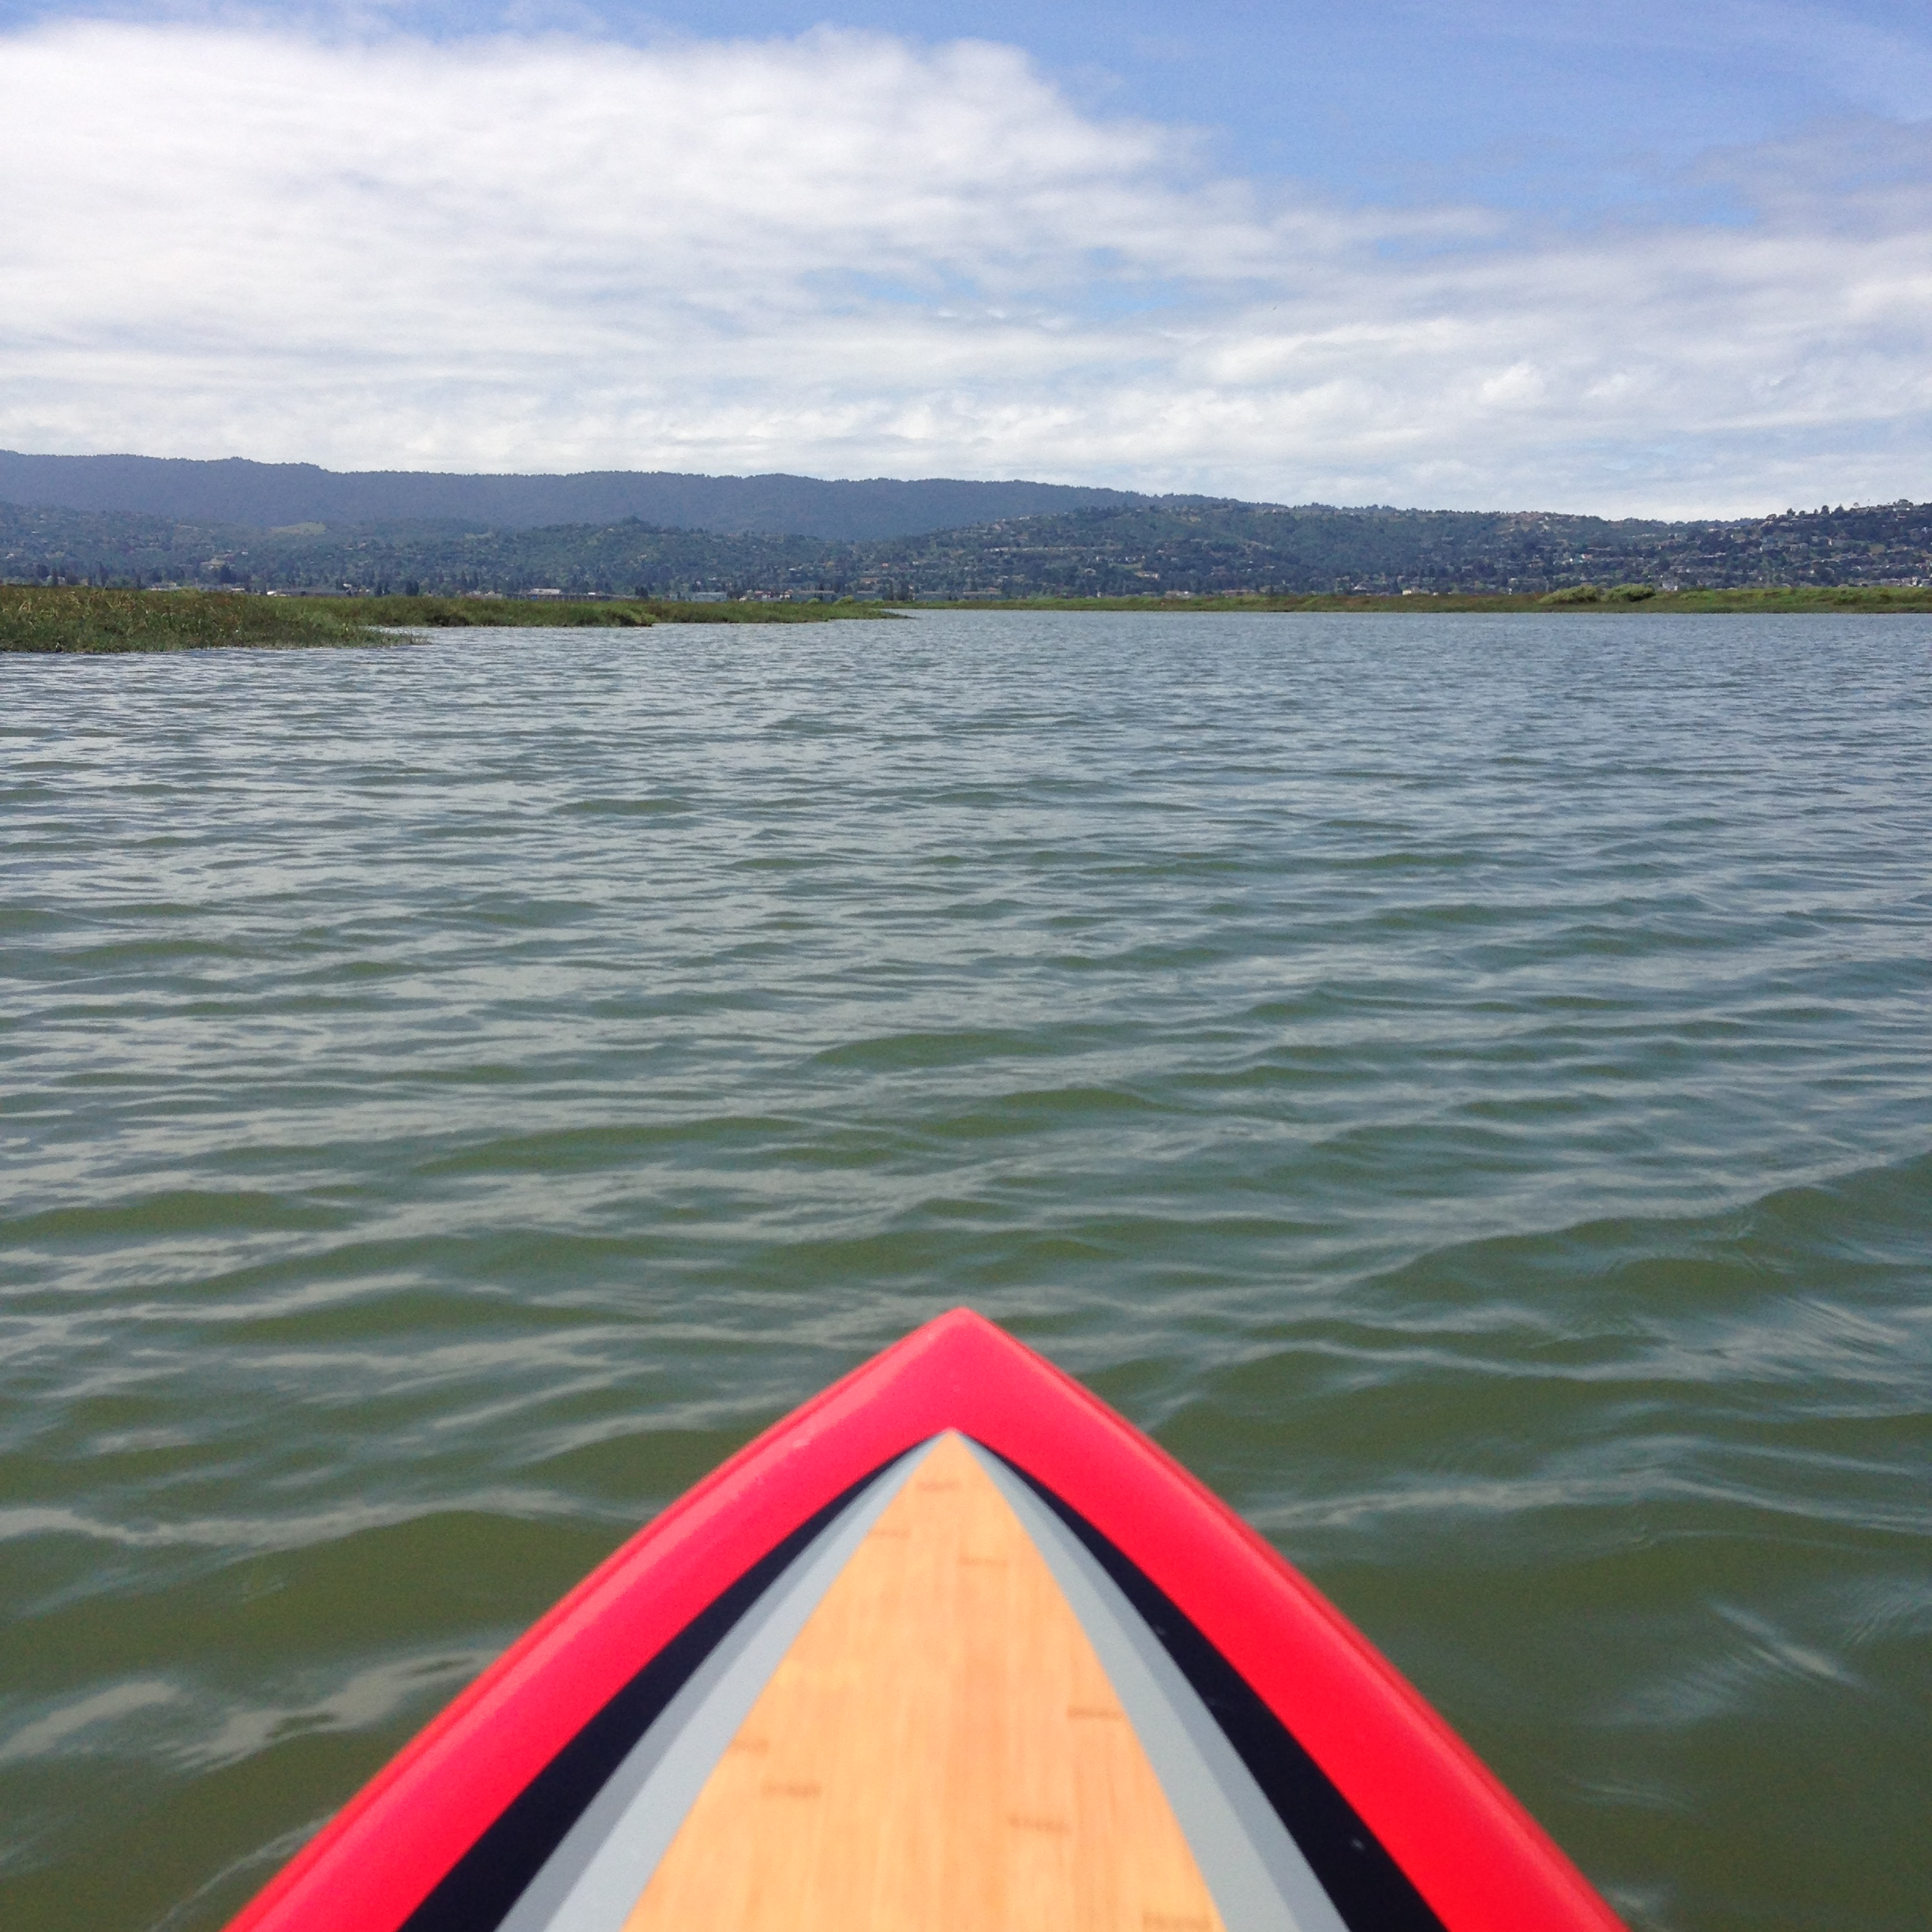 Paddleboard-level view of open water and hills beyond